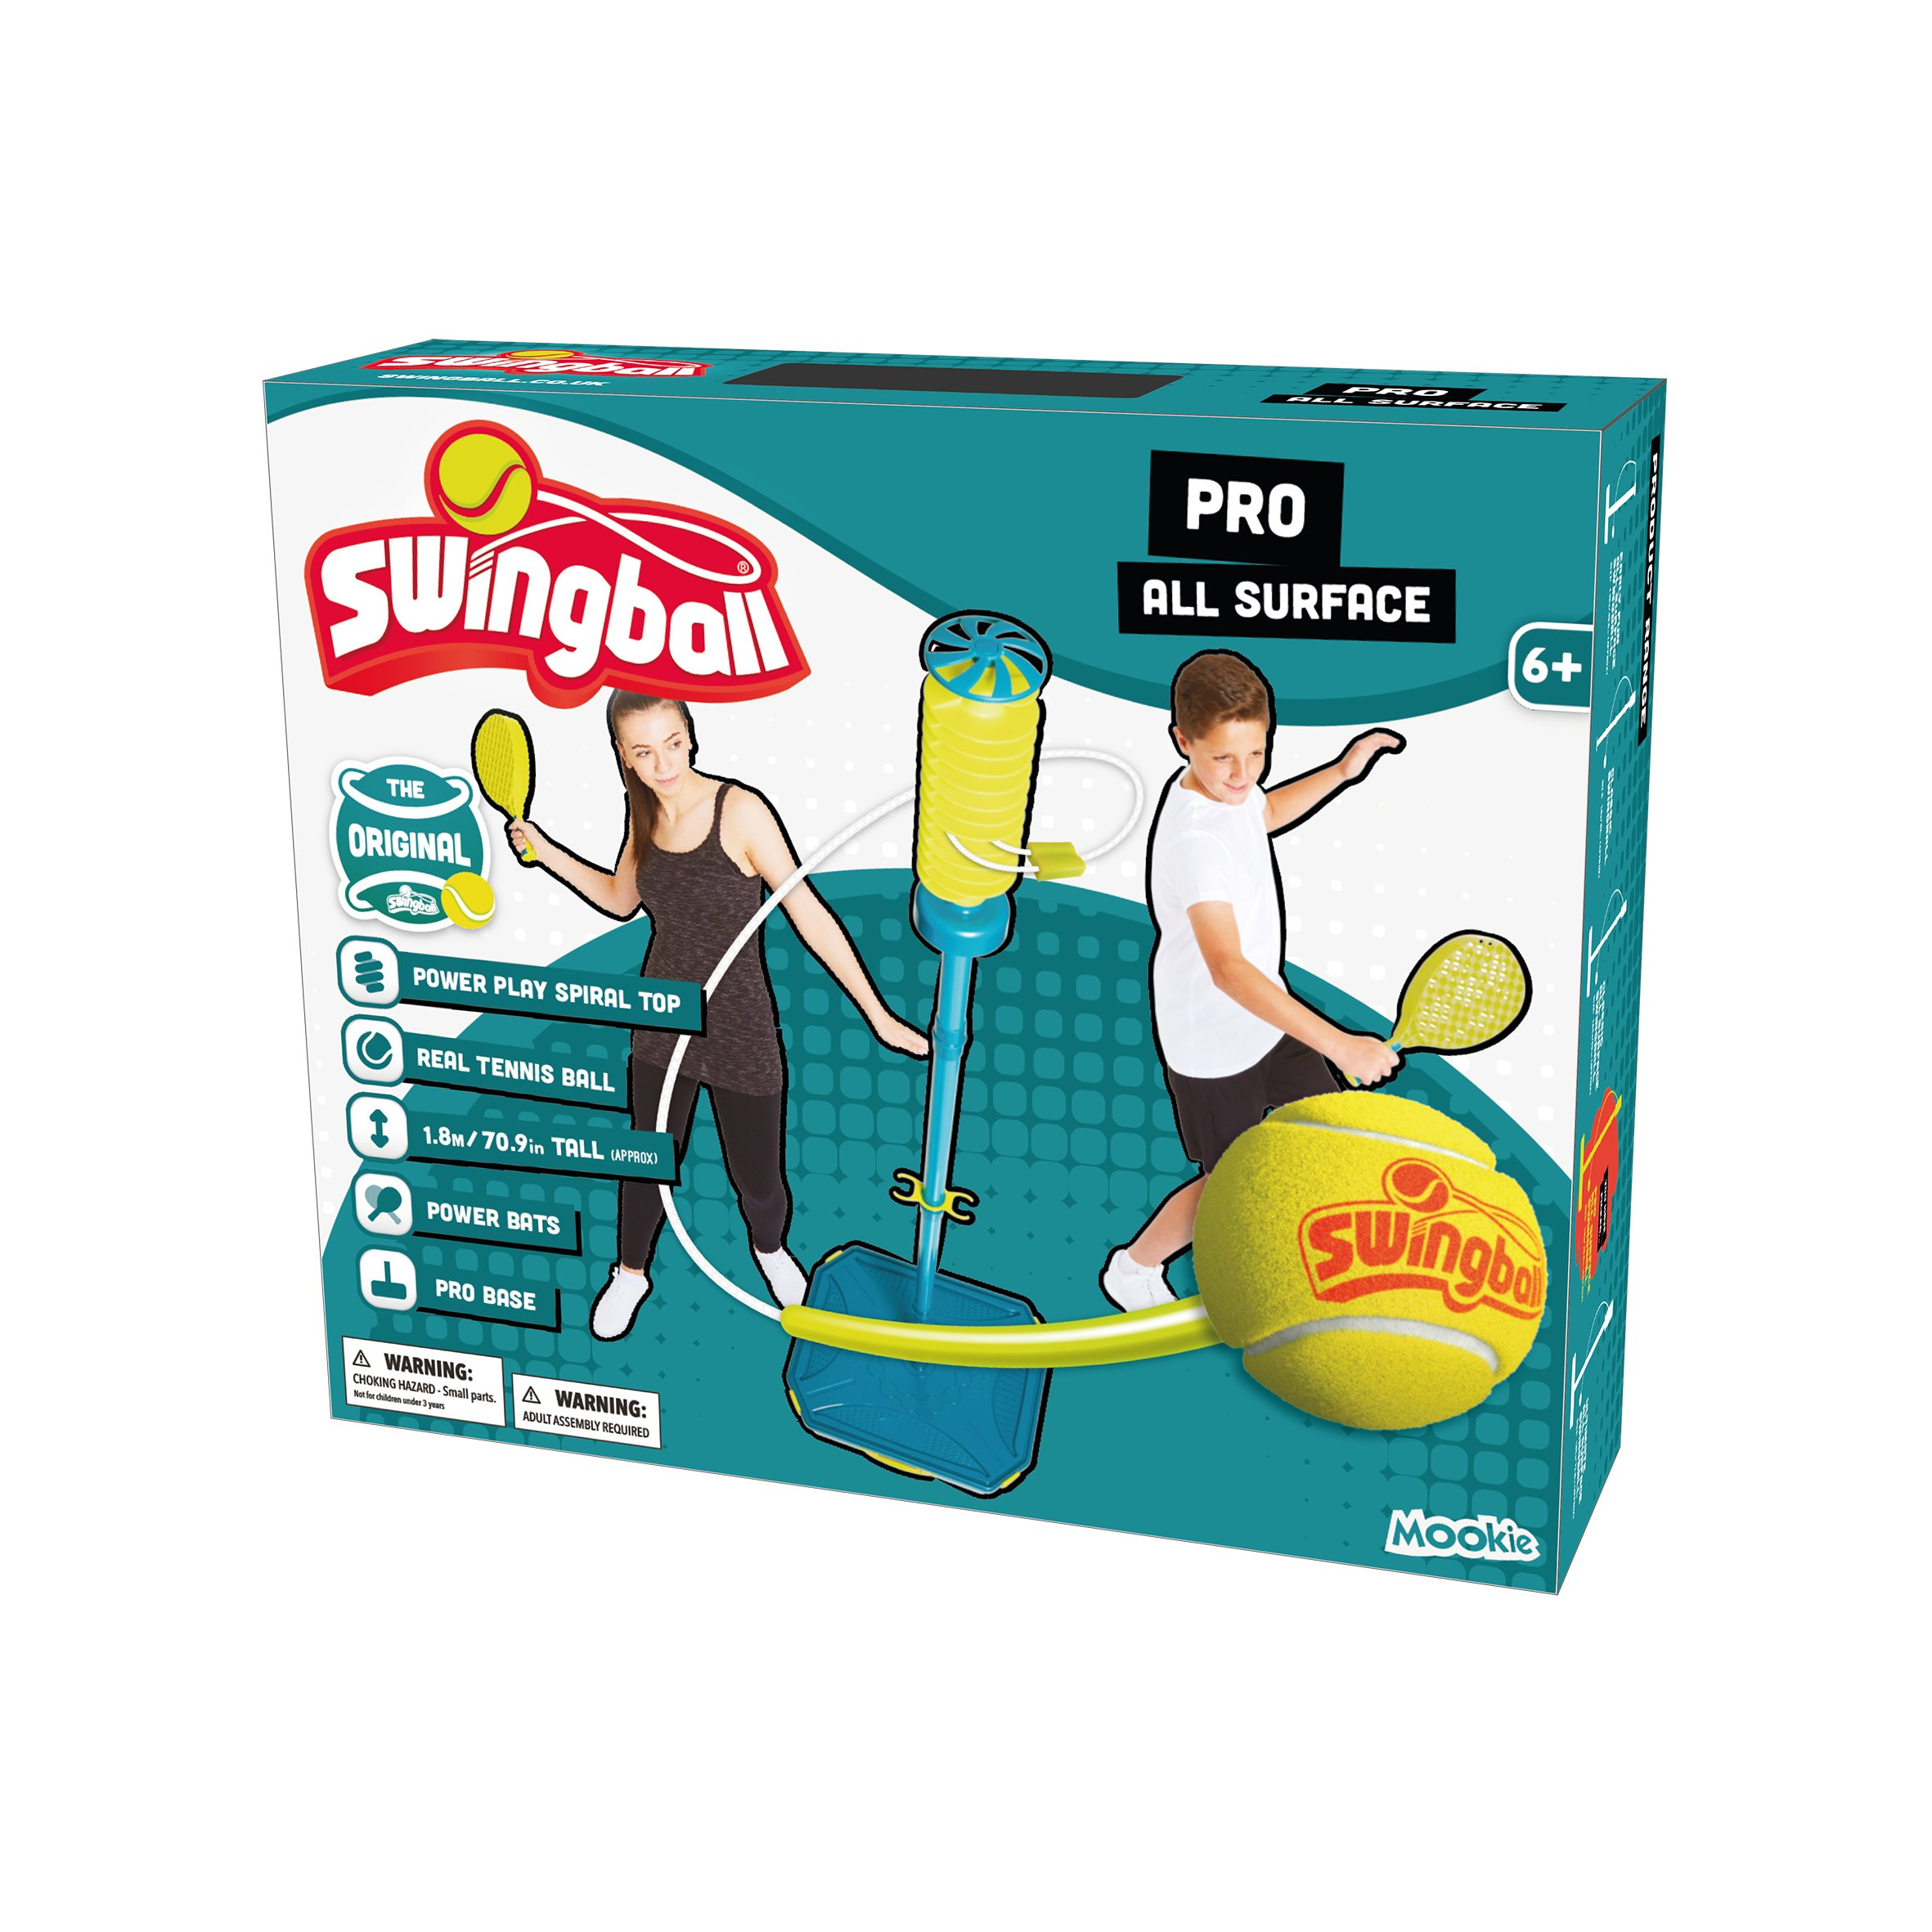 Swingball All Surface PRO Tetherball – Portable Tetherball Set by Swingball